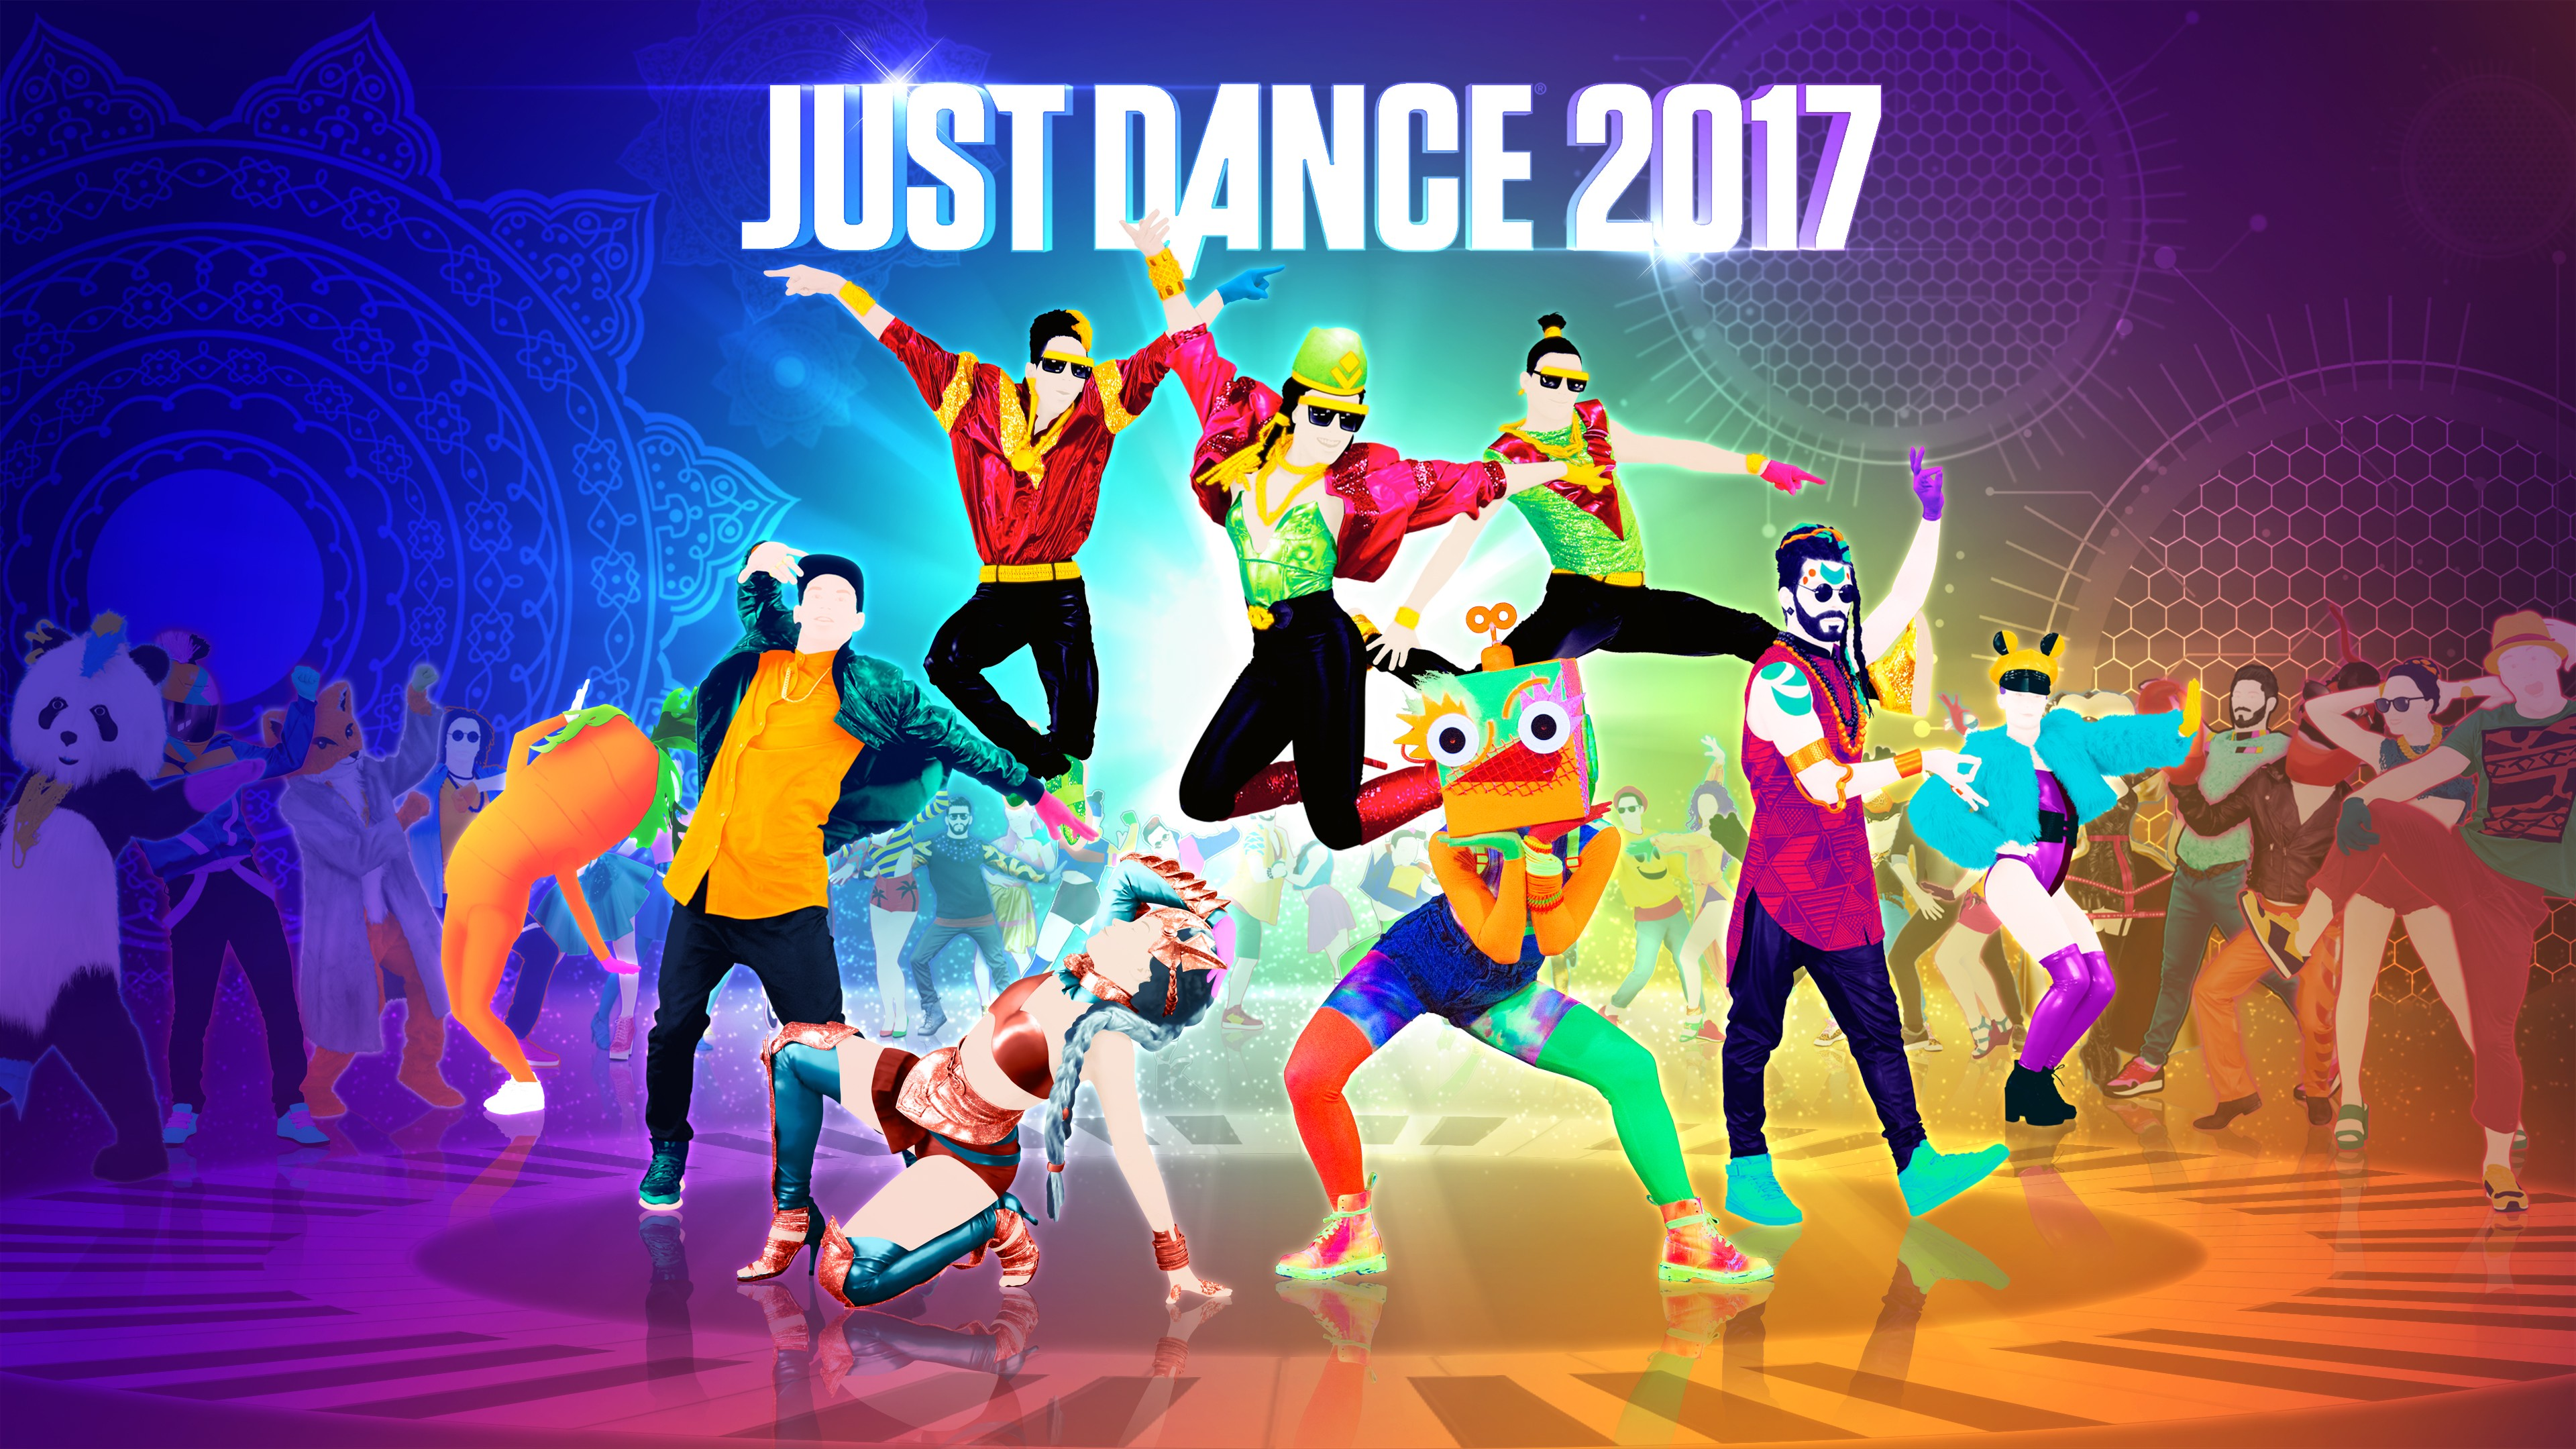 Dance Quotes Wallpapers Hd Wallpaper Just Dance 2018 4k E3 2017 Poster Games 14346